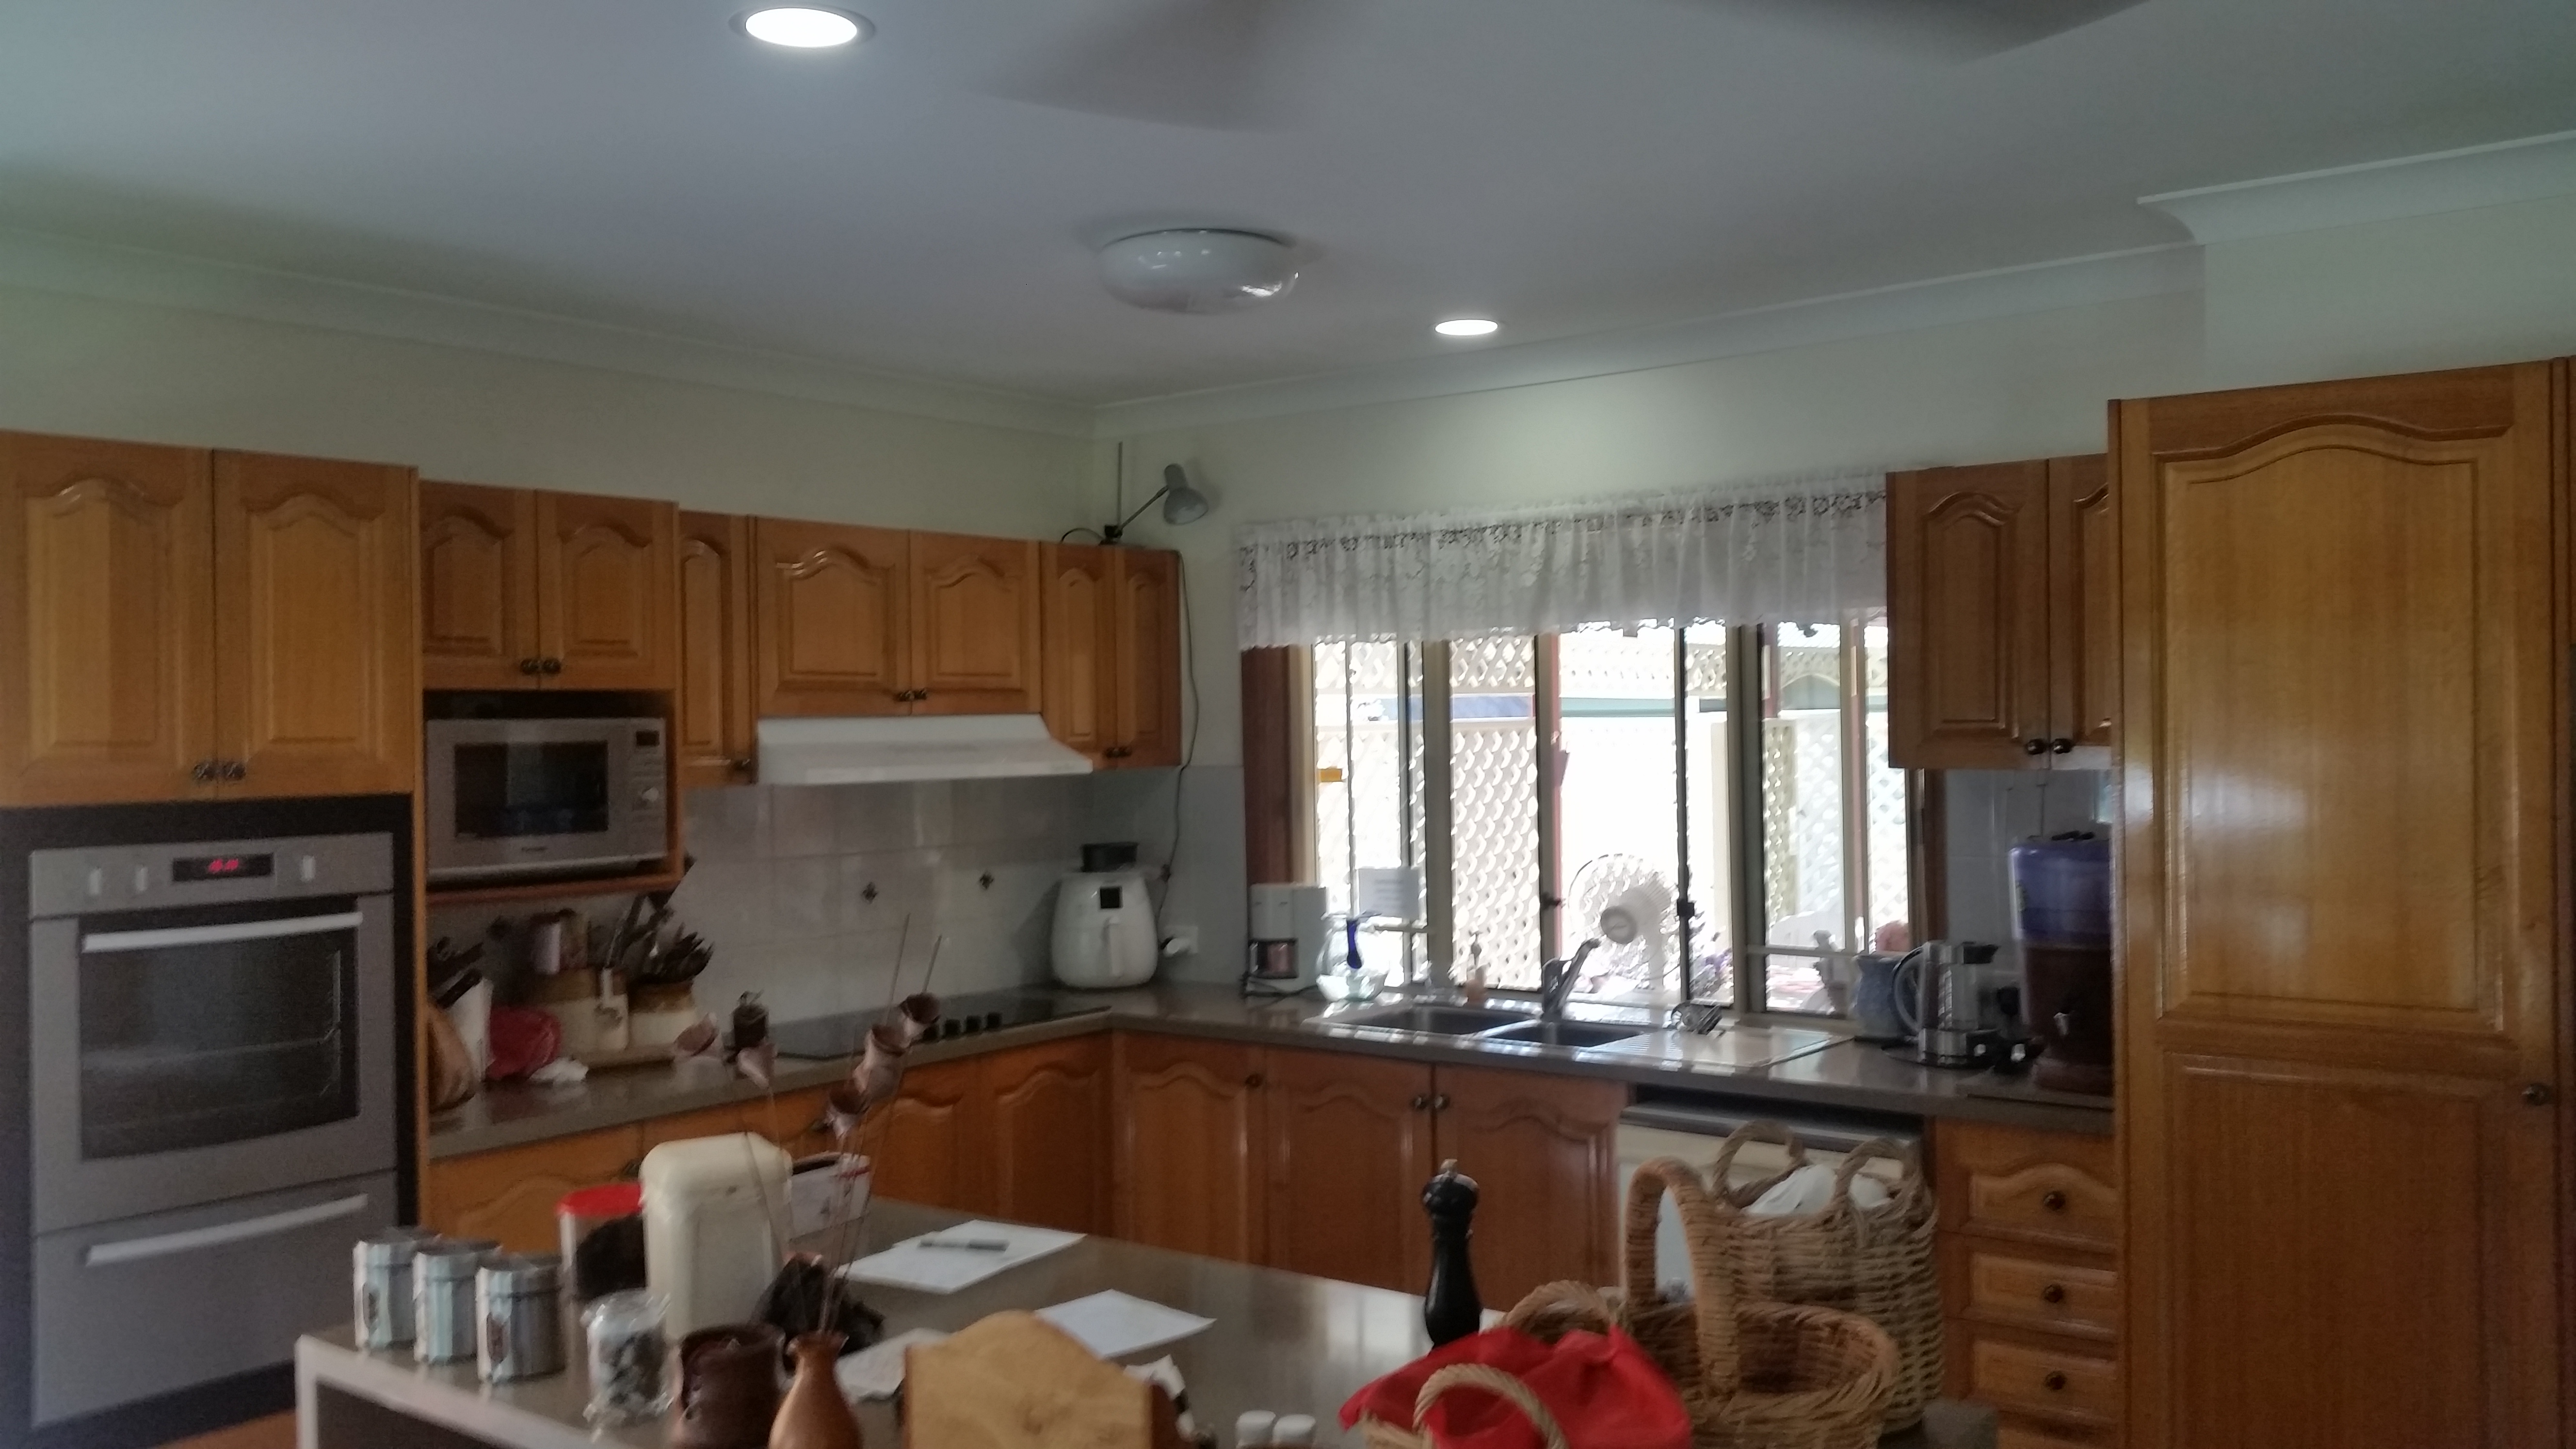 best ceiling strip fabulous in also lights kitchen r for strips lighting led ceilings concept